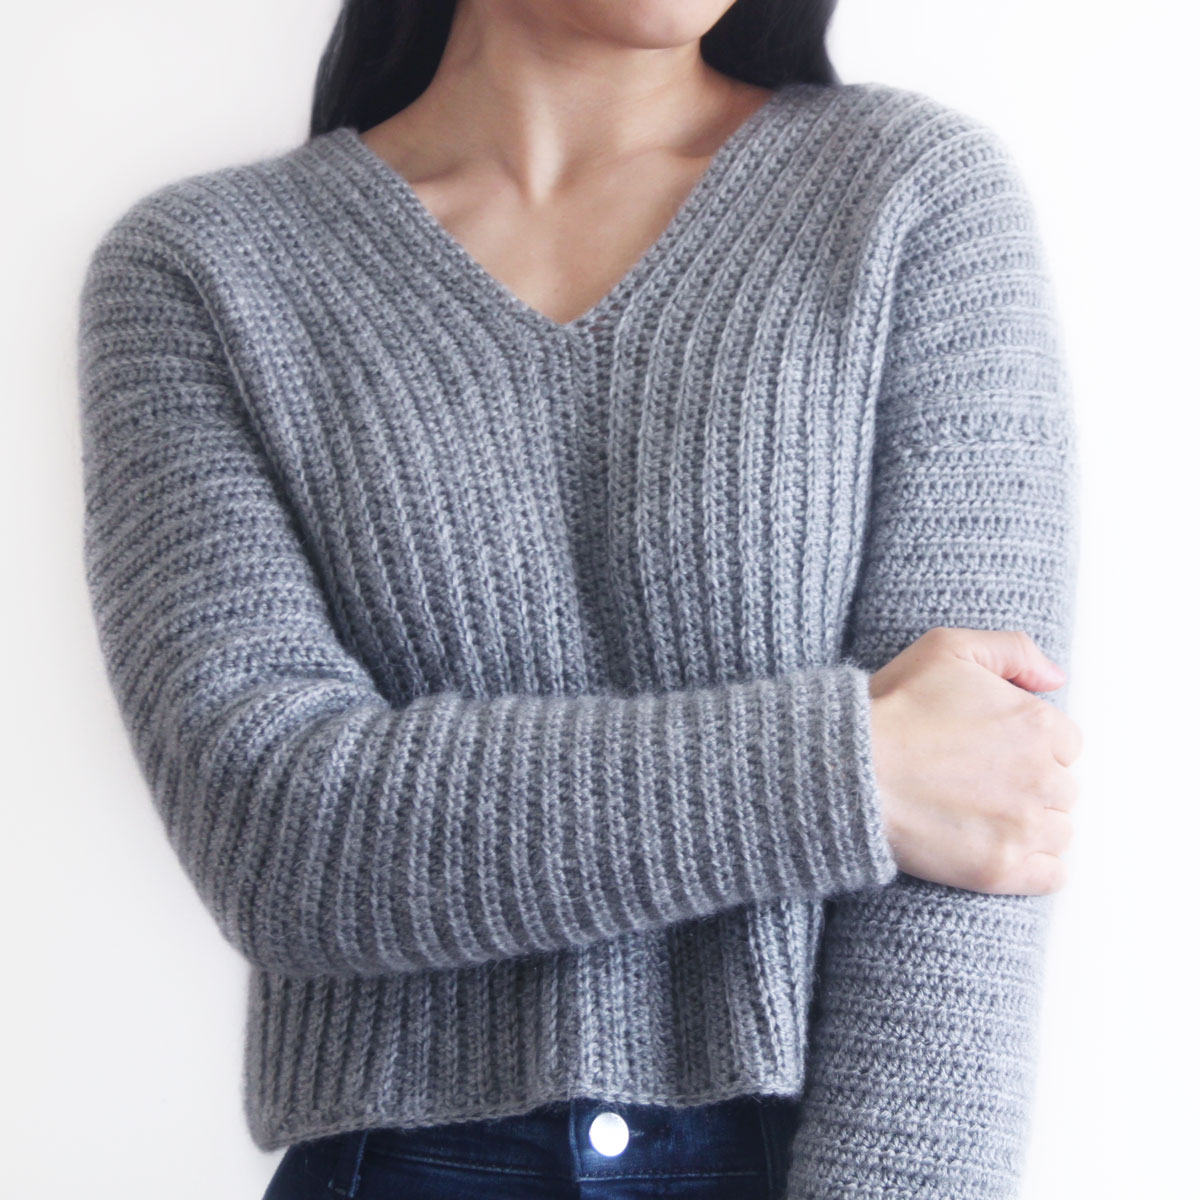 Ribbed V Neck Crochet Sweater Free Pattern Video For The Frills